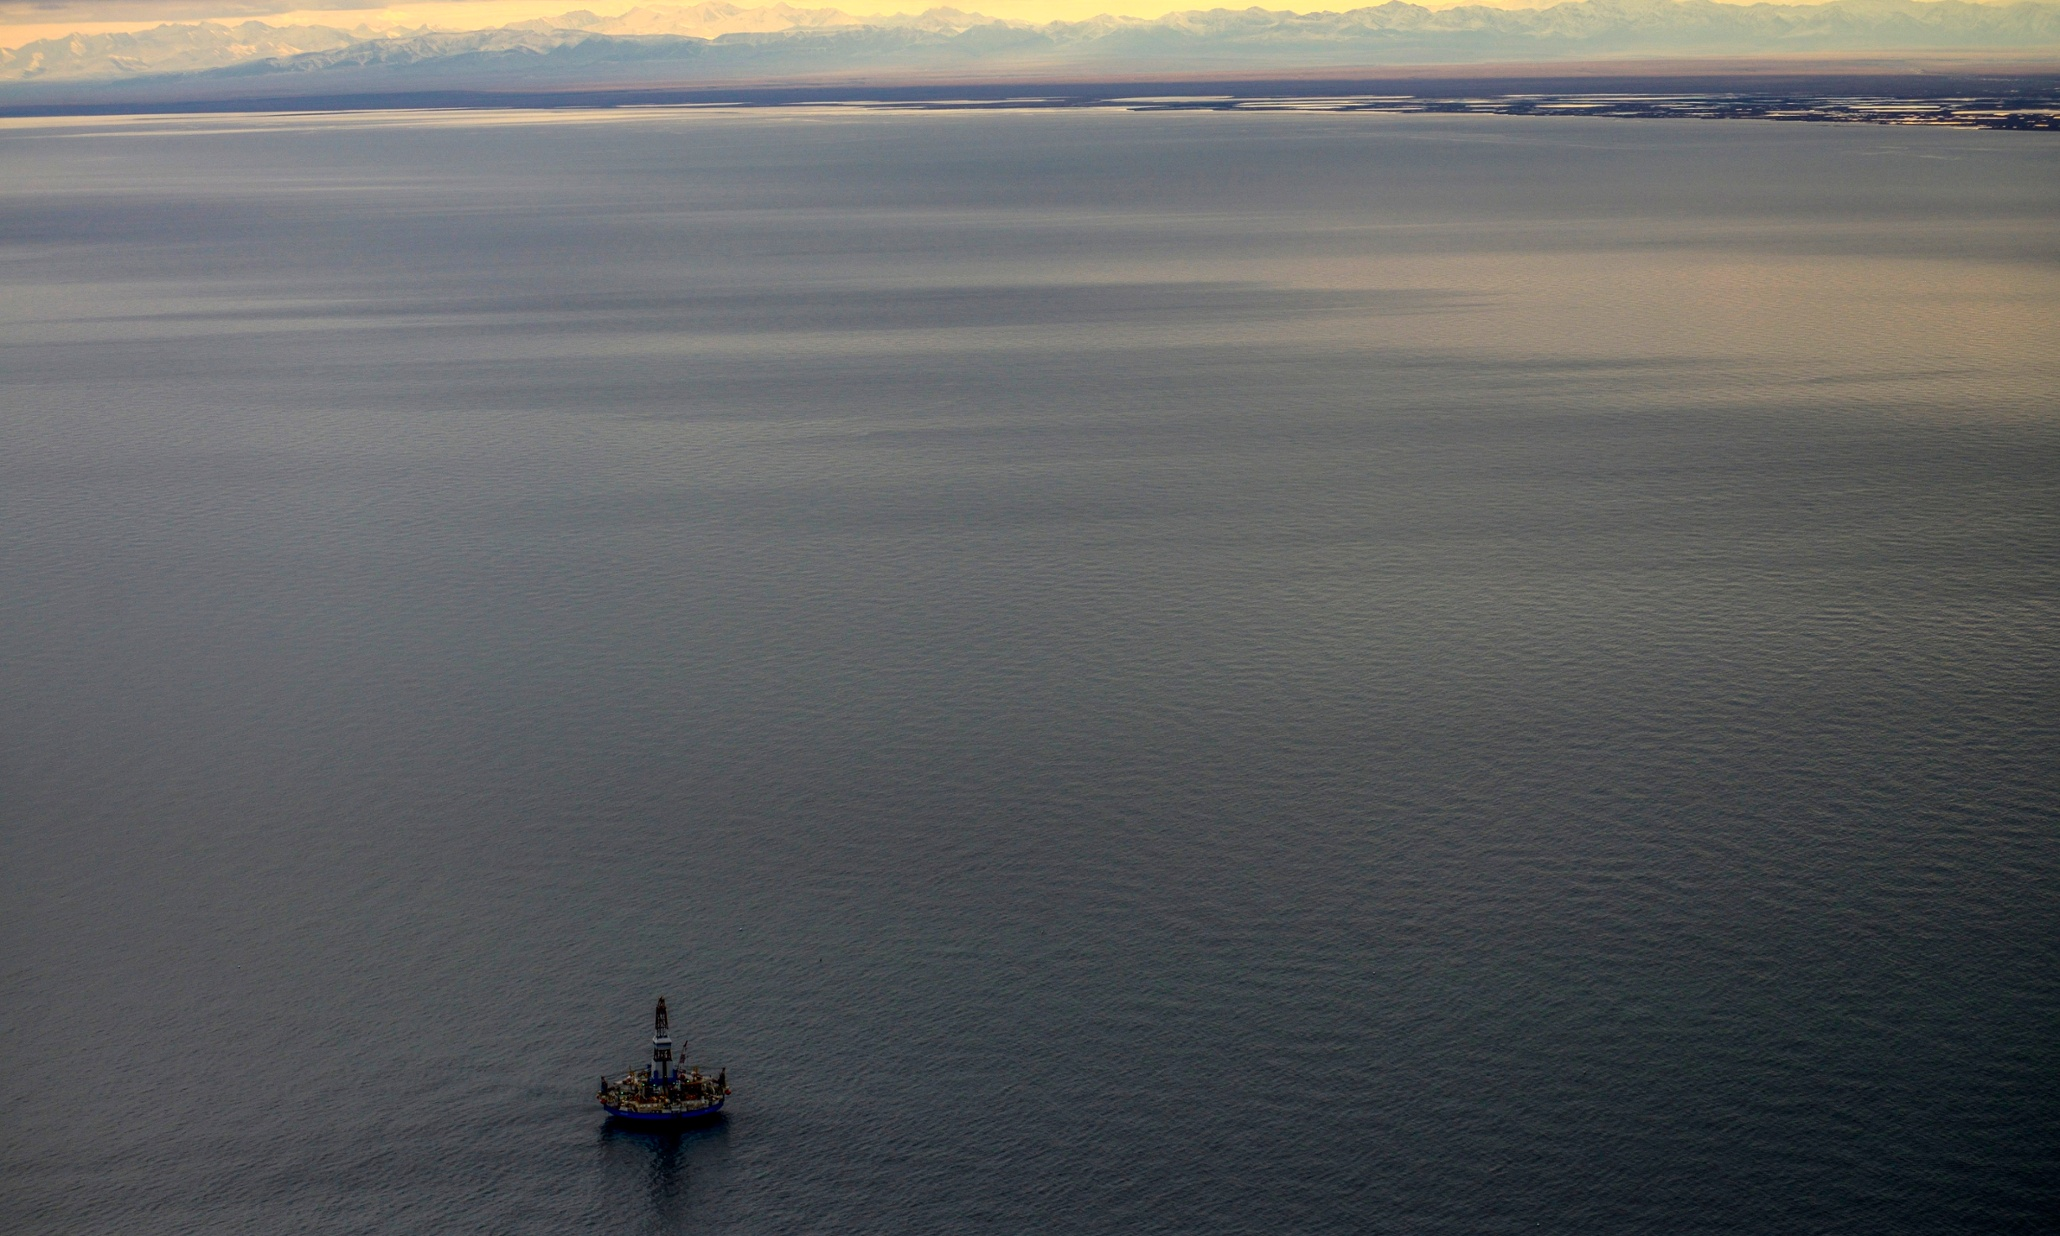 Shell cynically blocking action on climate change, says ex-diplomat | Environment | The Guardian